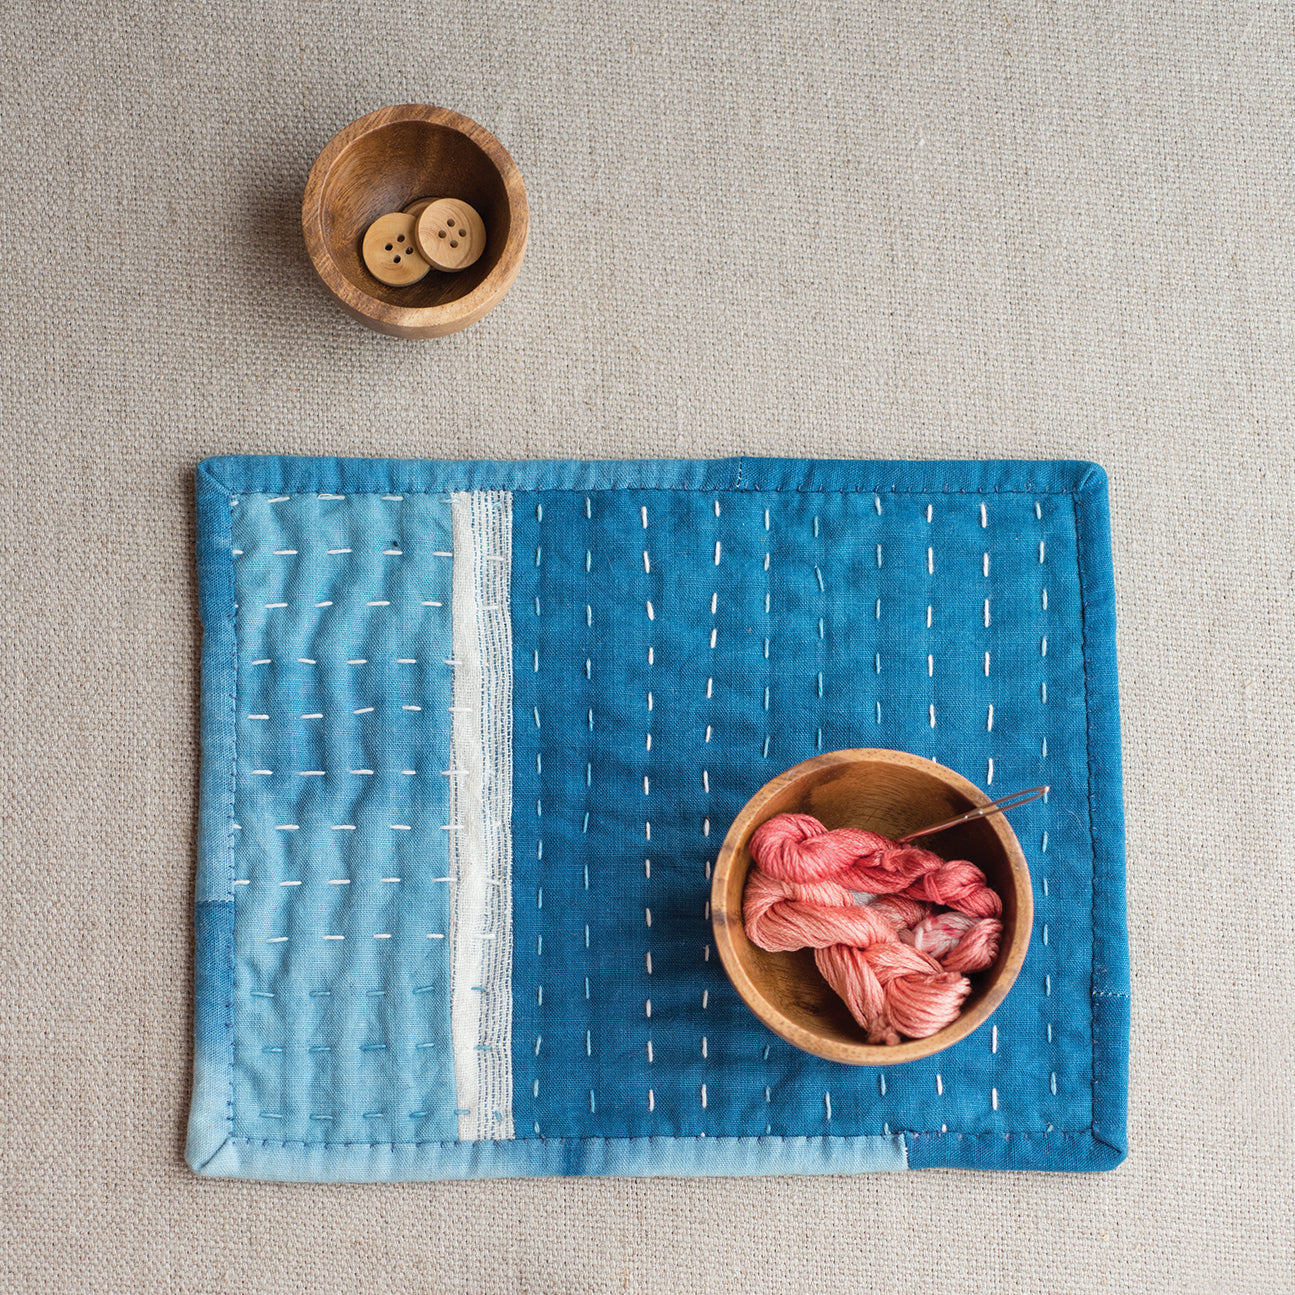 AVFKW x Making Mazgaine - The Little Indigo Quilt Kit